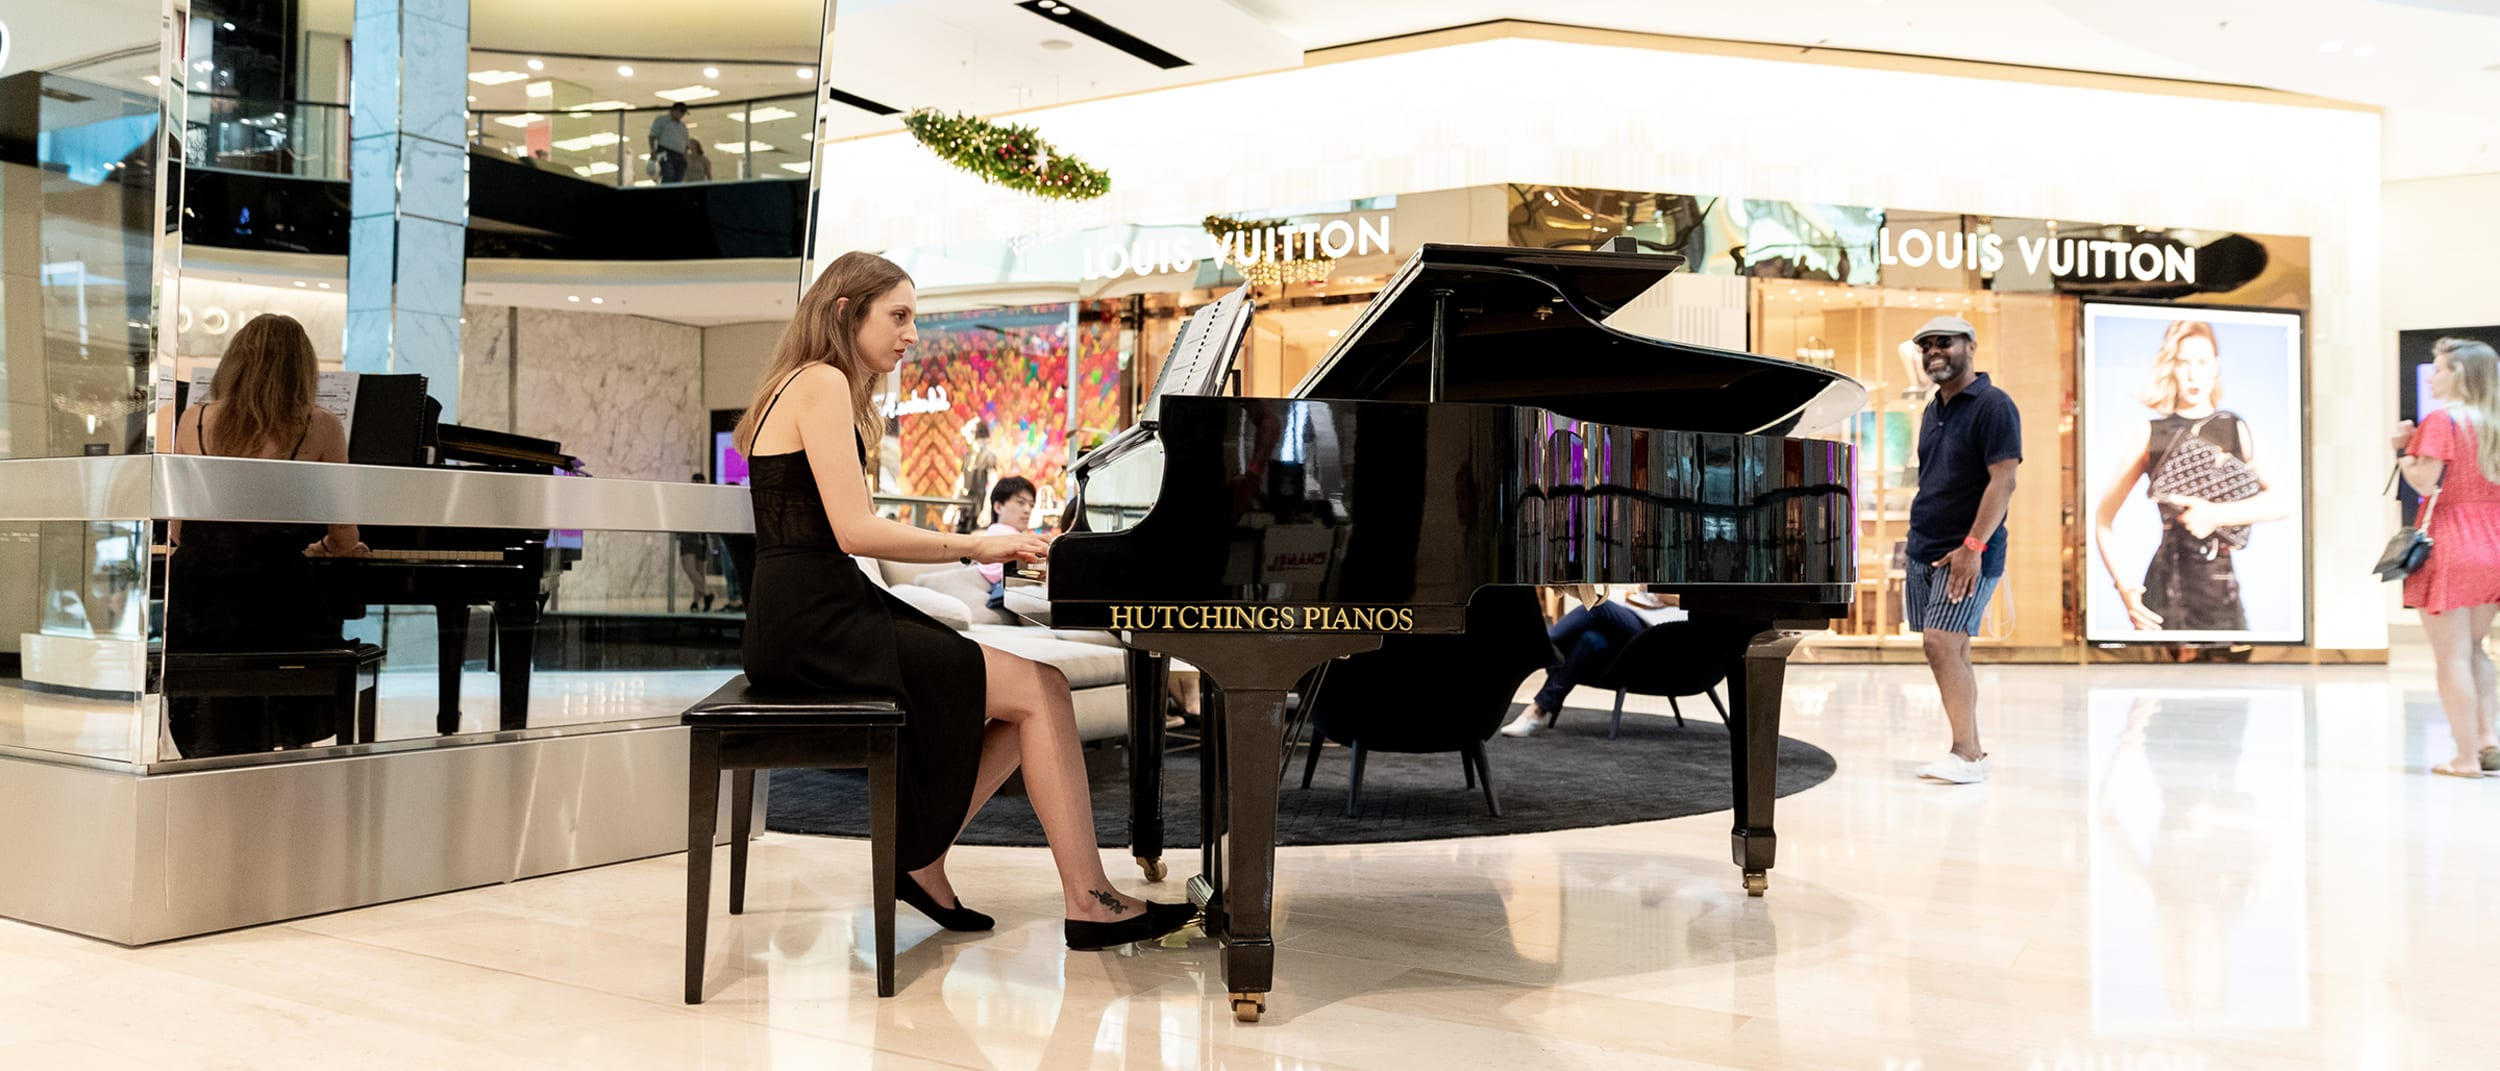 Enjoy the festive tunes of our playful pianists